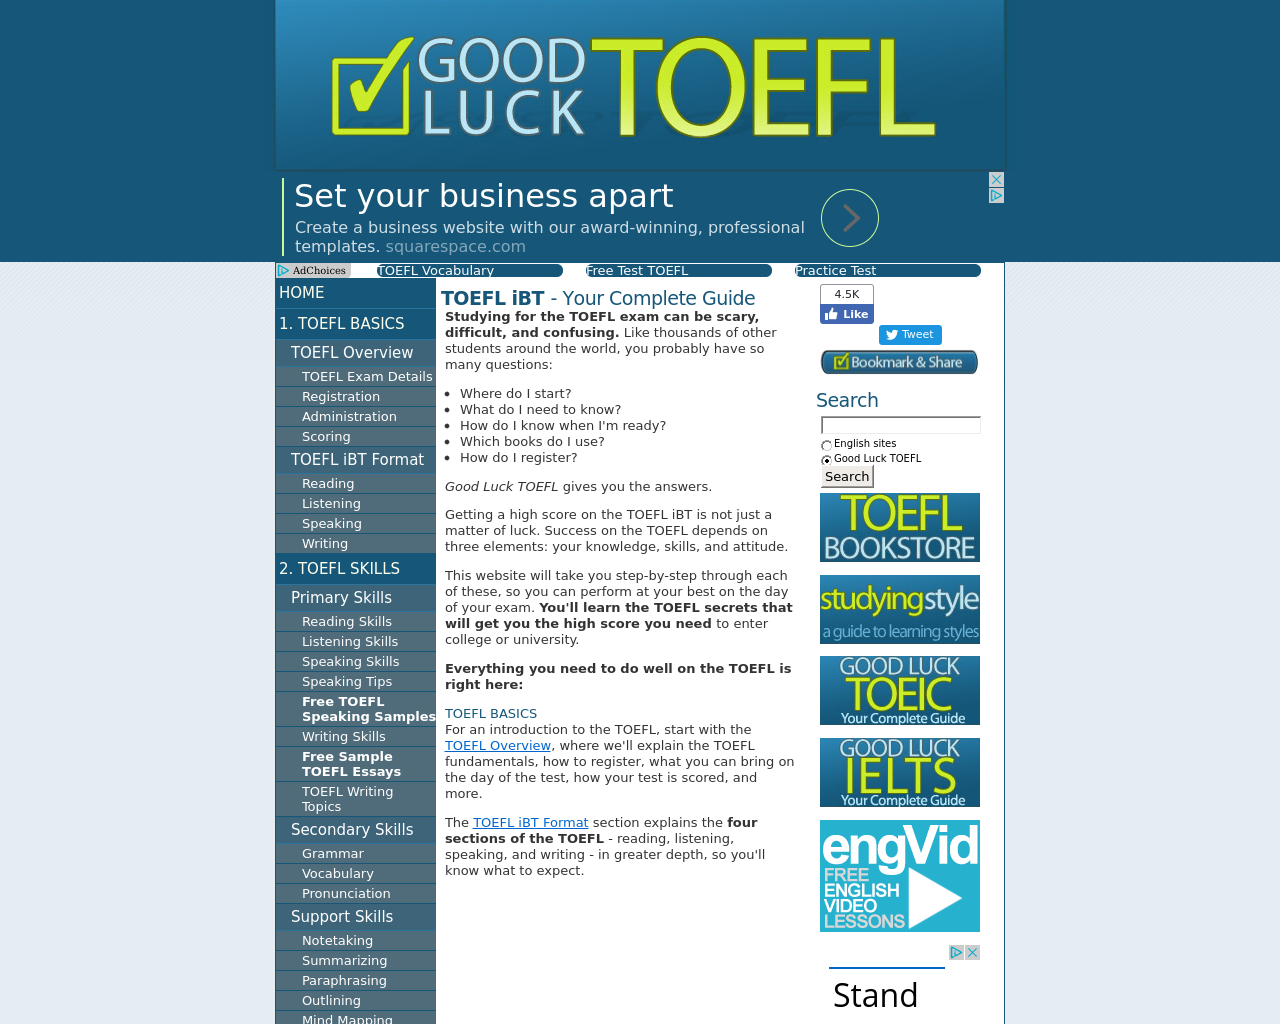 Good-Luck-TOEFL-Advertising-Reviews-Pricing